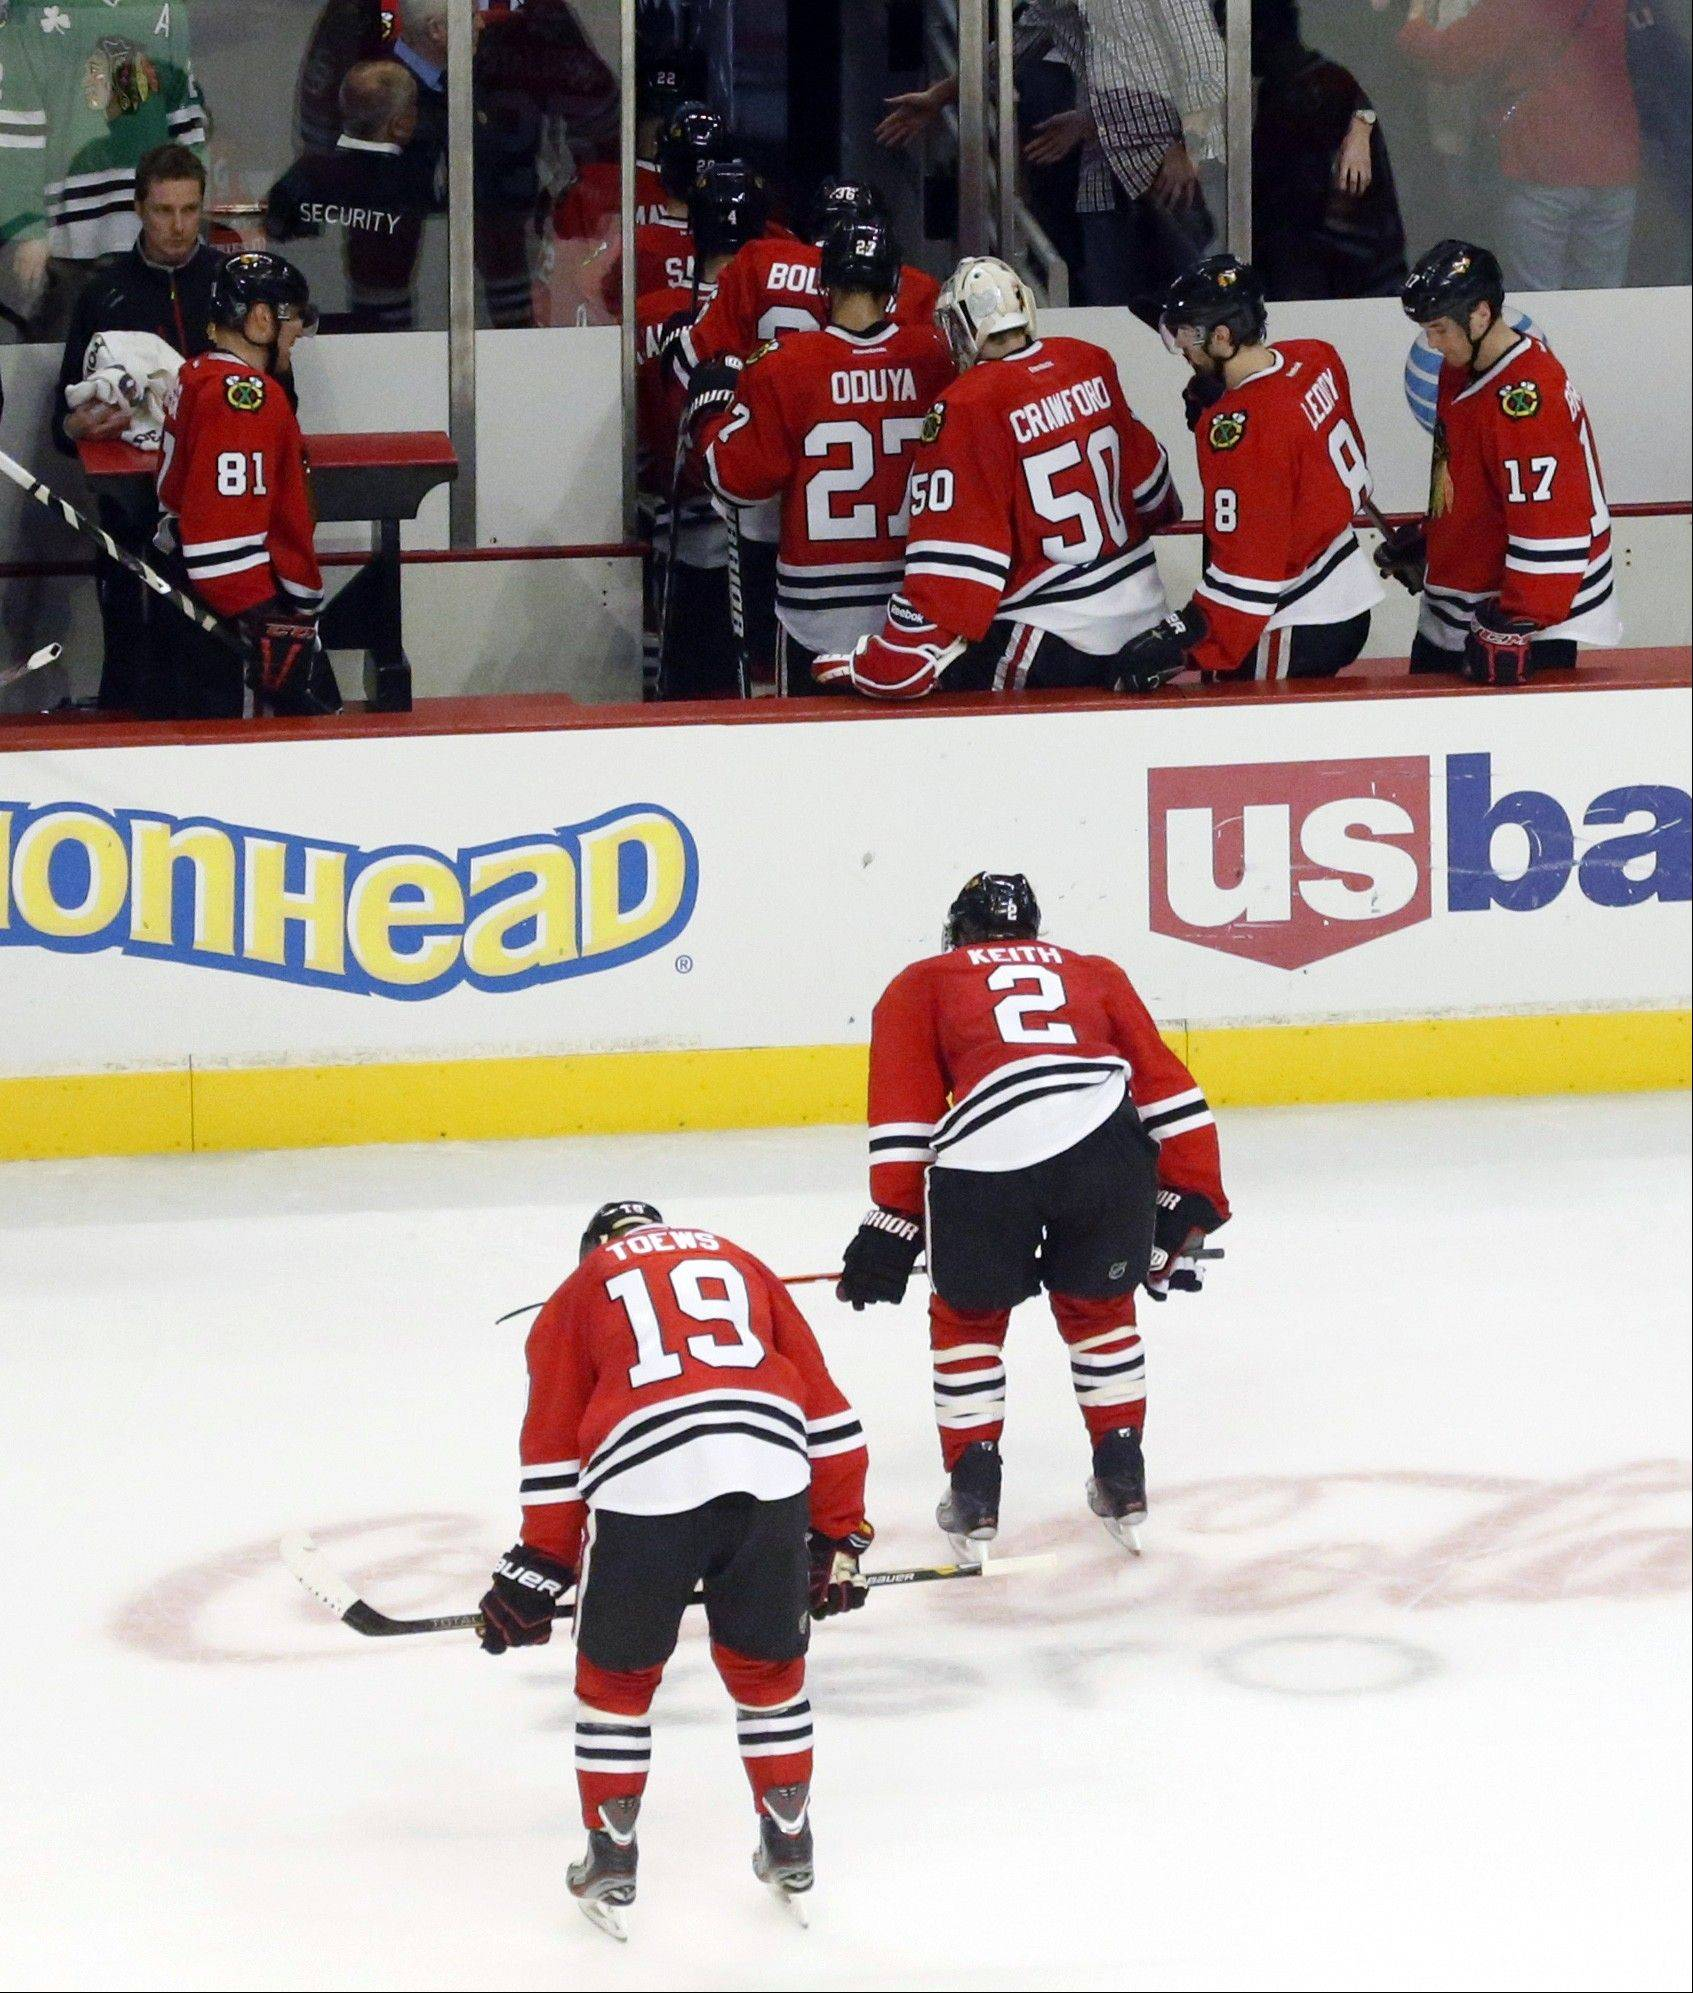 Blackhawks center Jonathan Toews and defenseman Duncan Keith skate to the locker room with teammates Sunday after their 6-5 loss to the Edmonton Oilers.